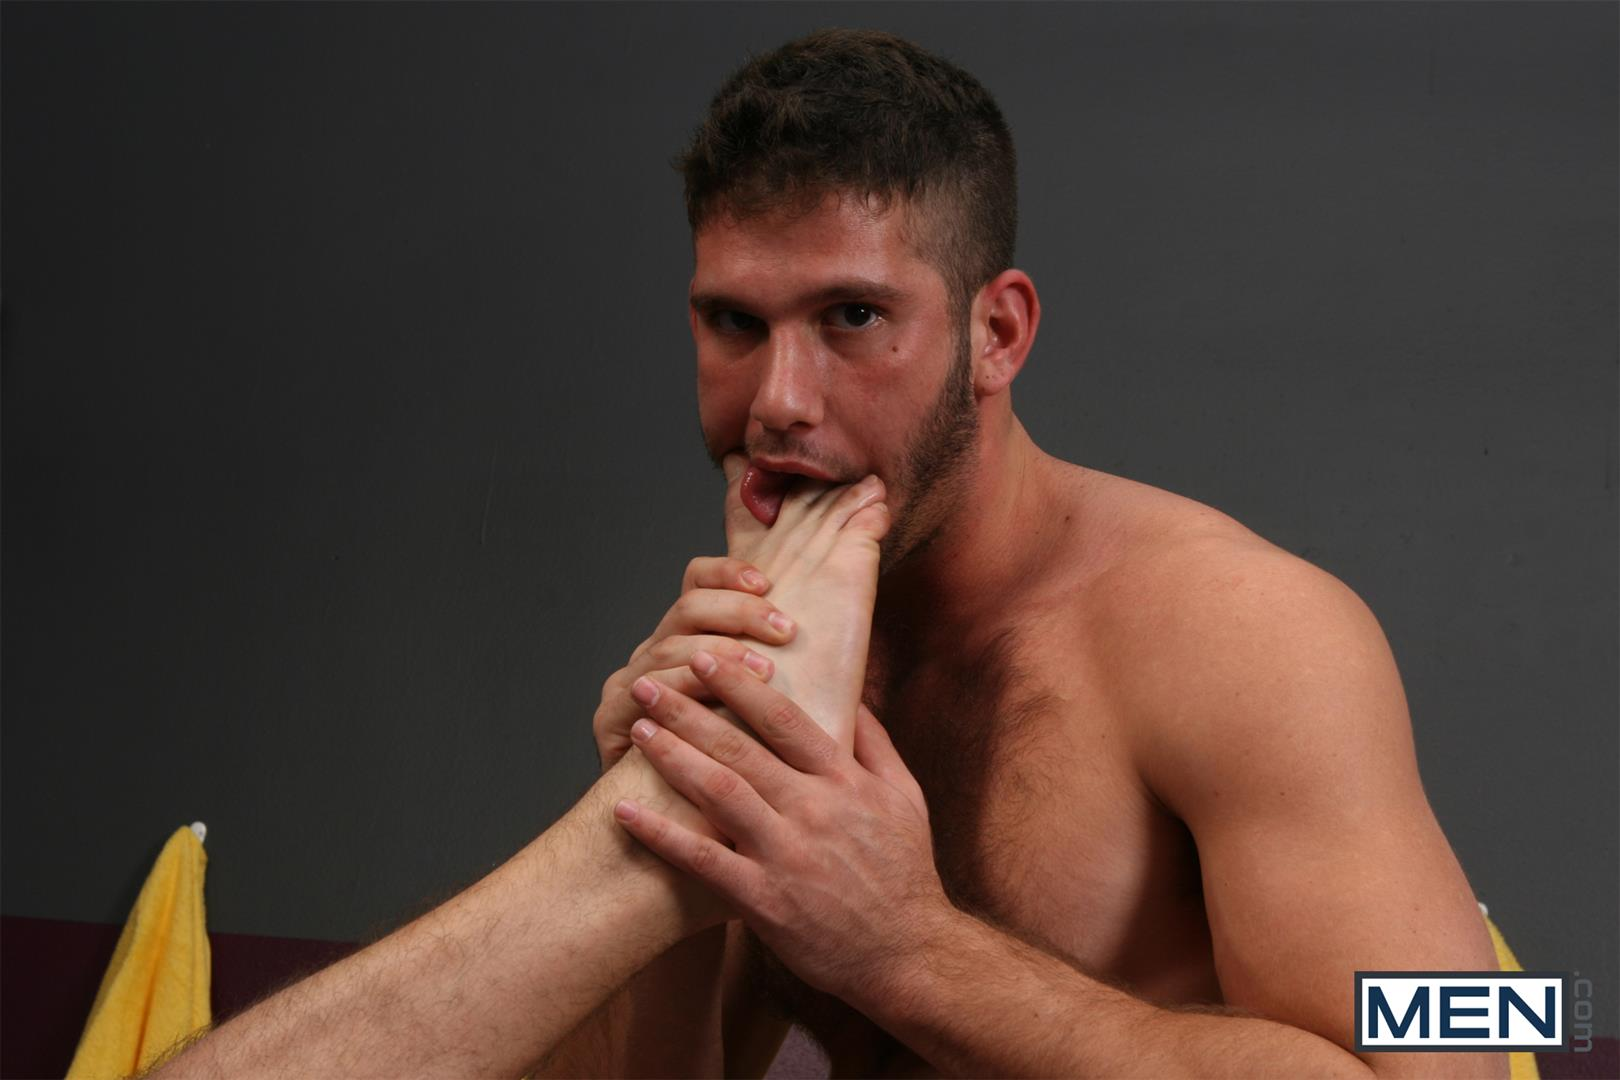 Men Drill My Hole Colt Rivers and Jimmy Fanz Muscle Jocks Fucking In The Locker Room Amateur Gay Porn 15 Hairy Ass Muscle Jocks Fucking In The Locker Room